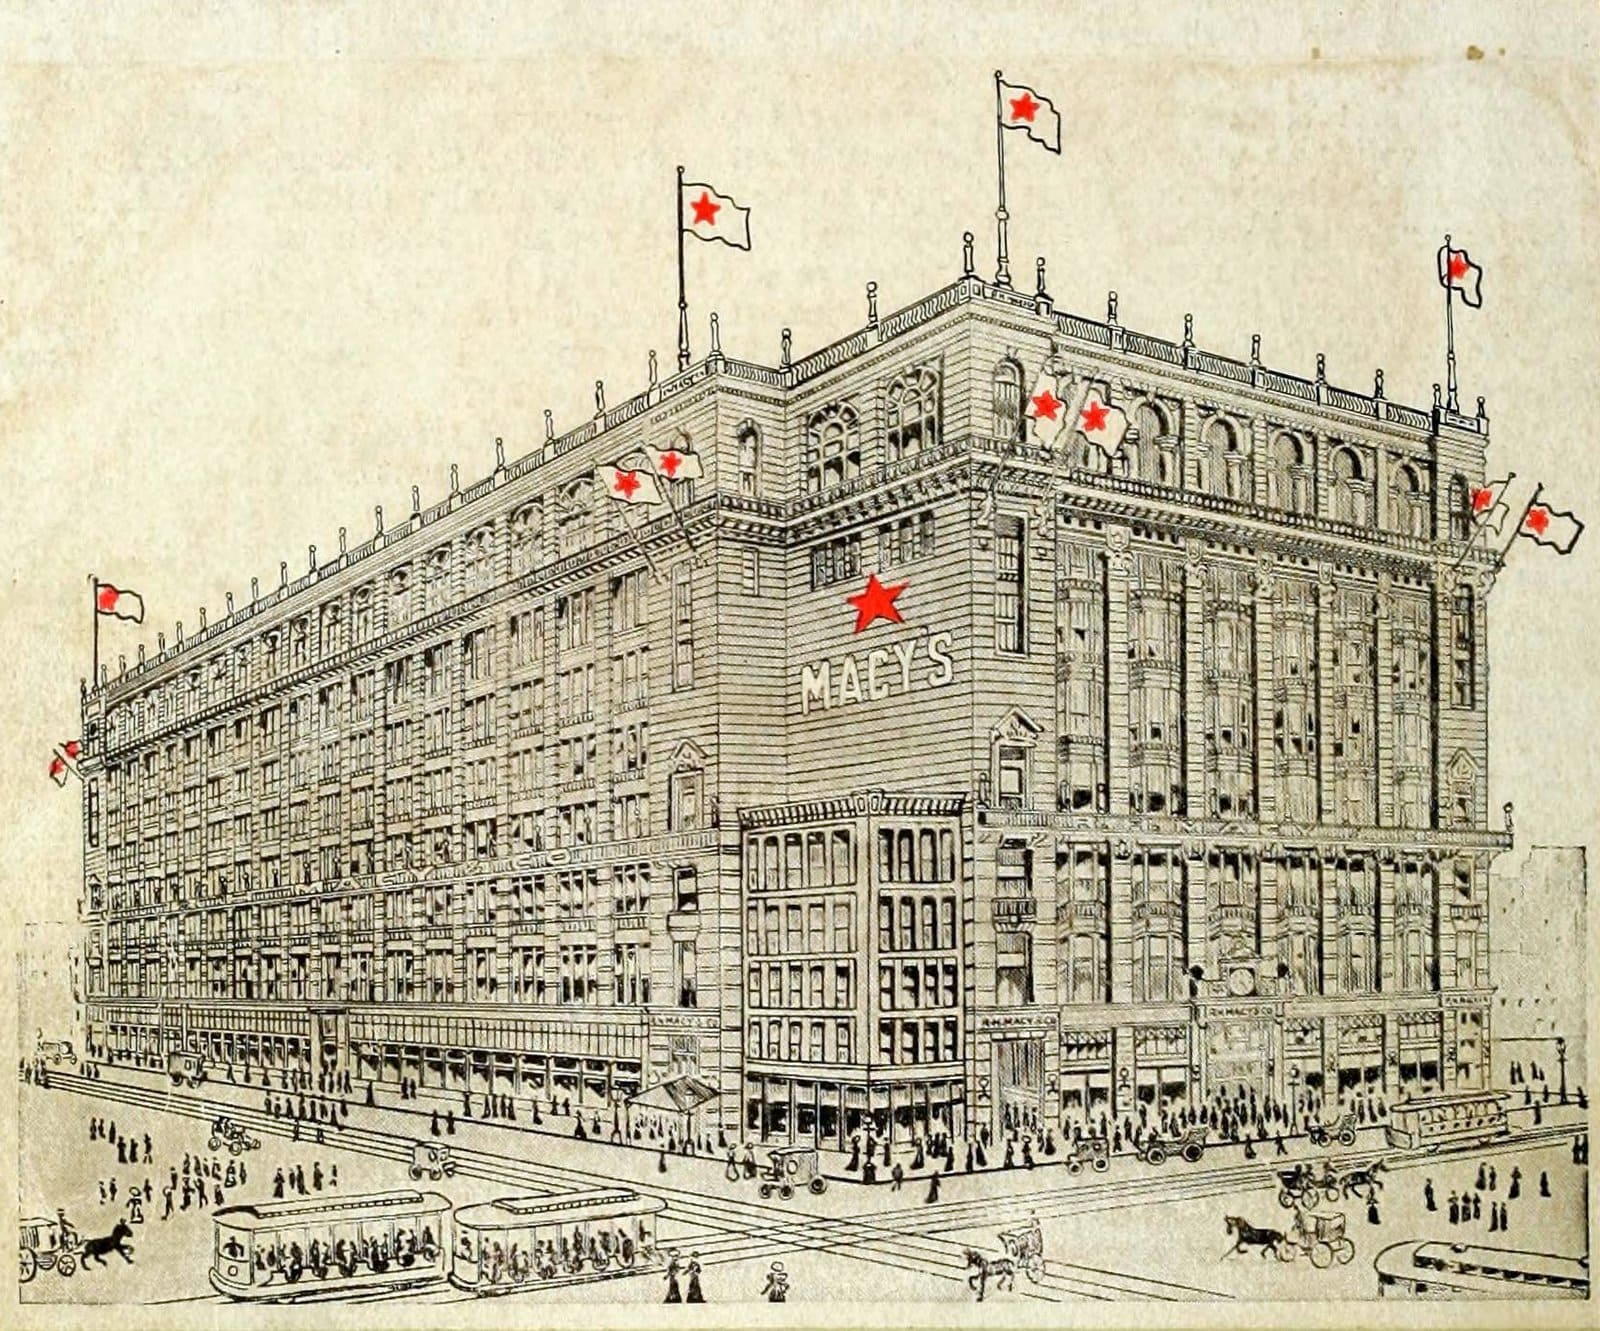 Old Macy's store in NYC (1900s)